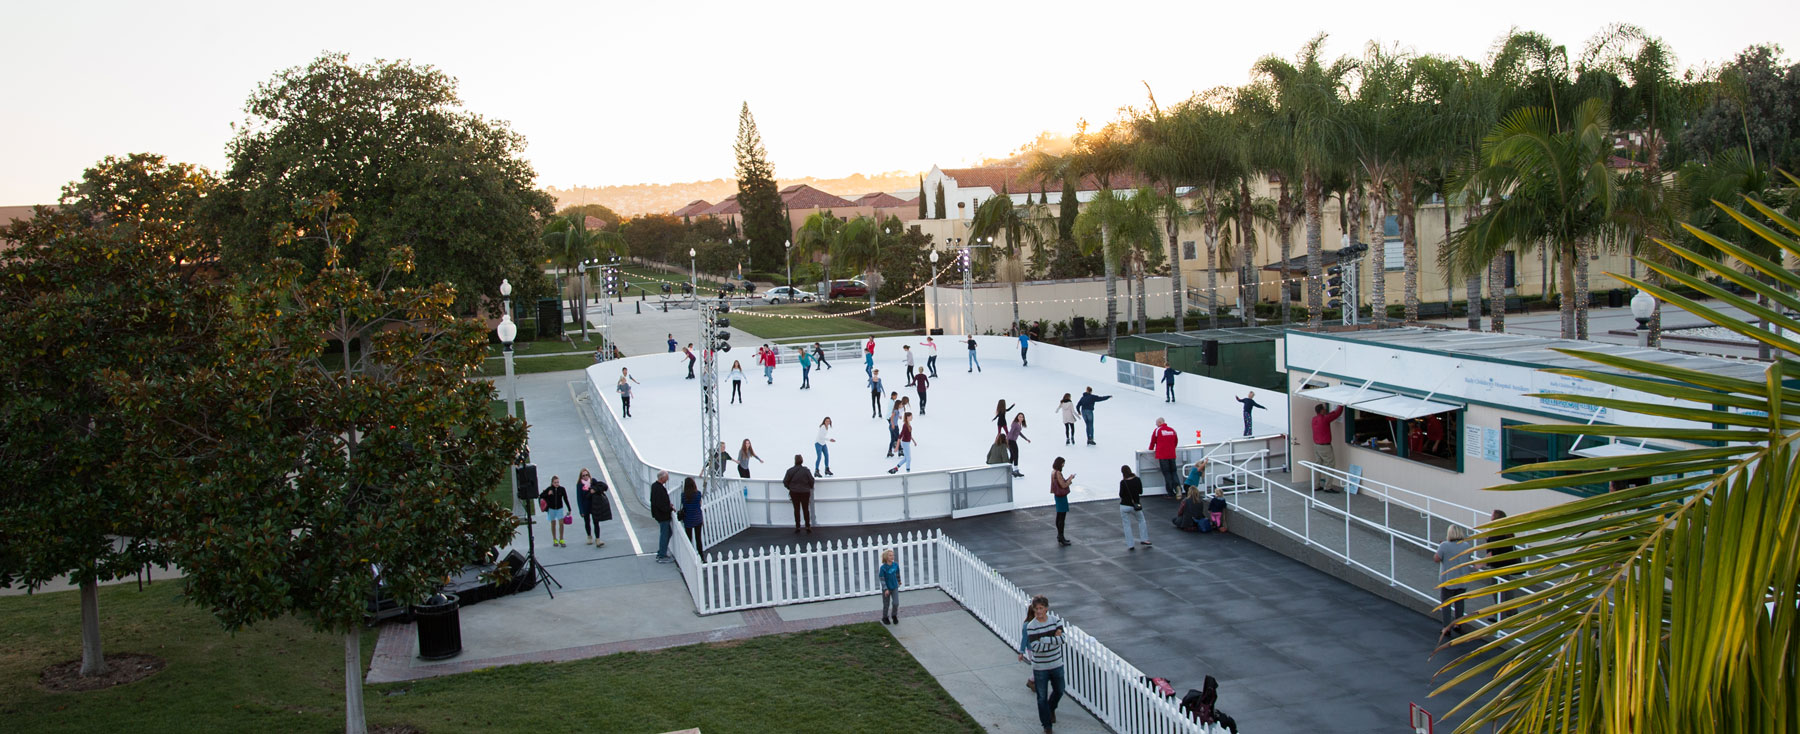 san diego outdoor ice skating rinks yes they do exist